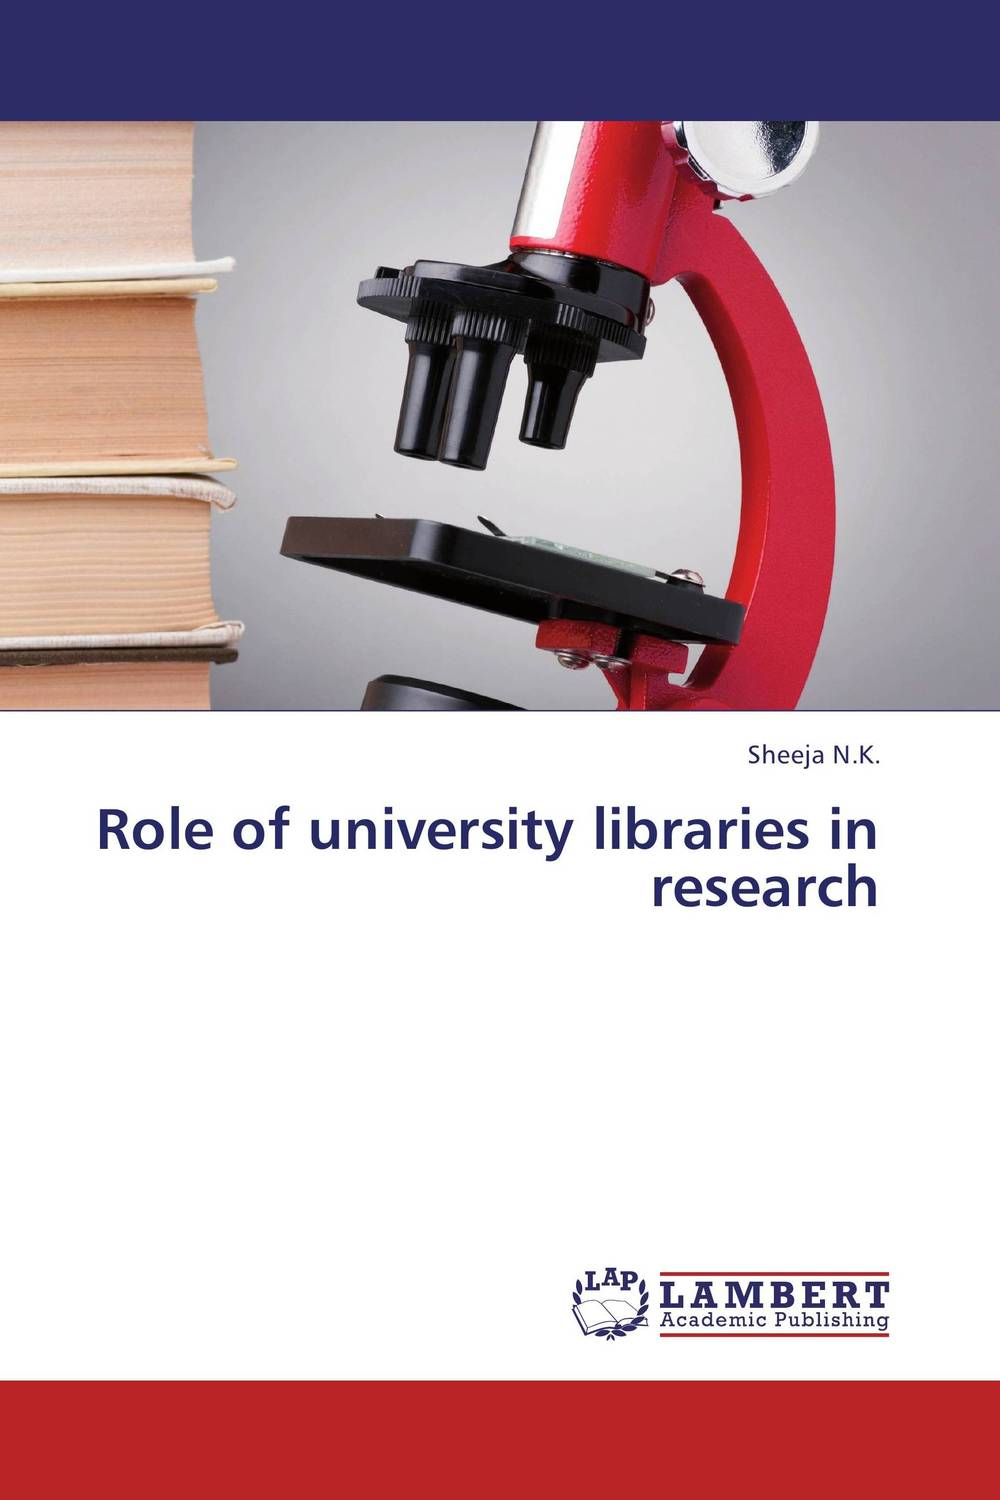 Role of university libraries in research manage enterprise knowledge systematically